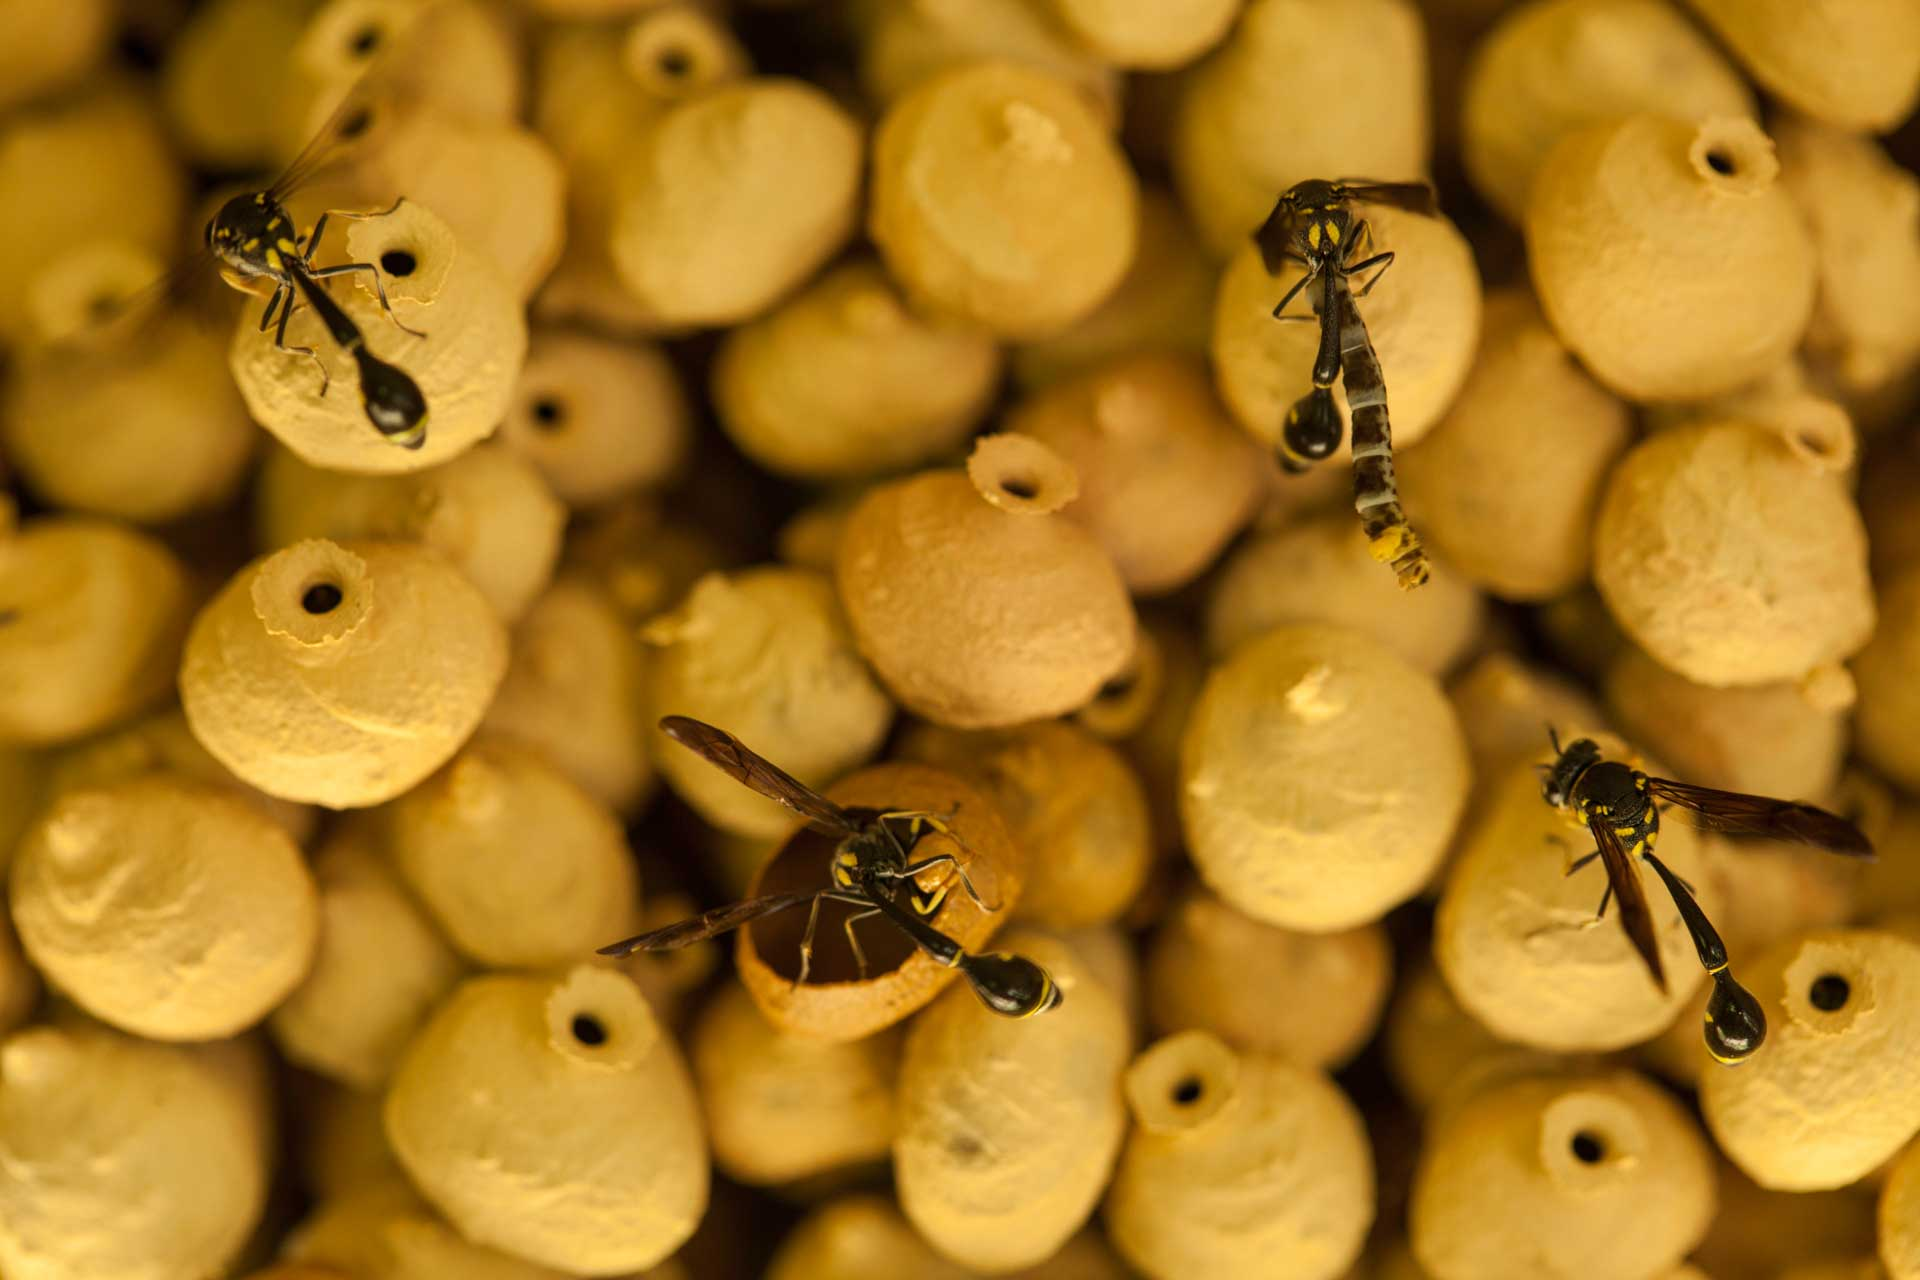 Parasitoid wasps building clay pots in Borneo, Brunei.